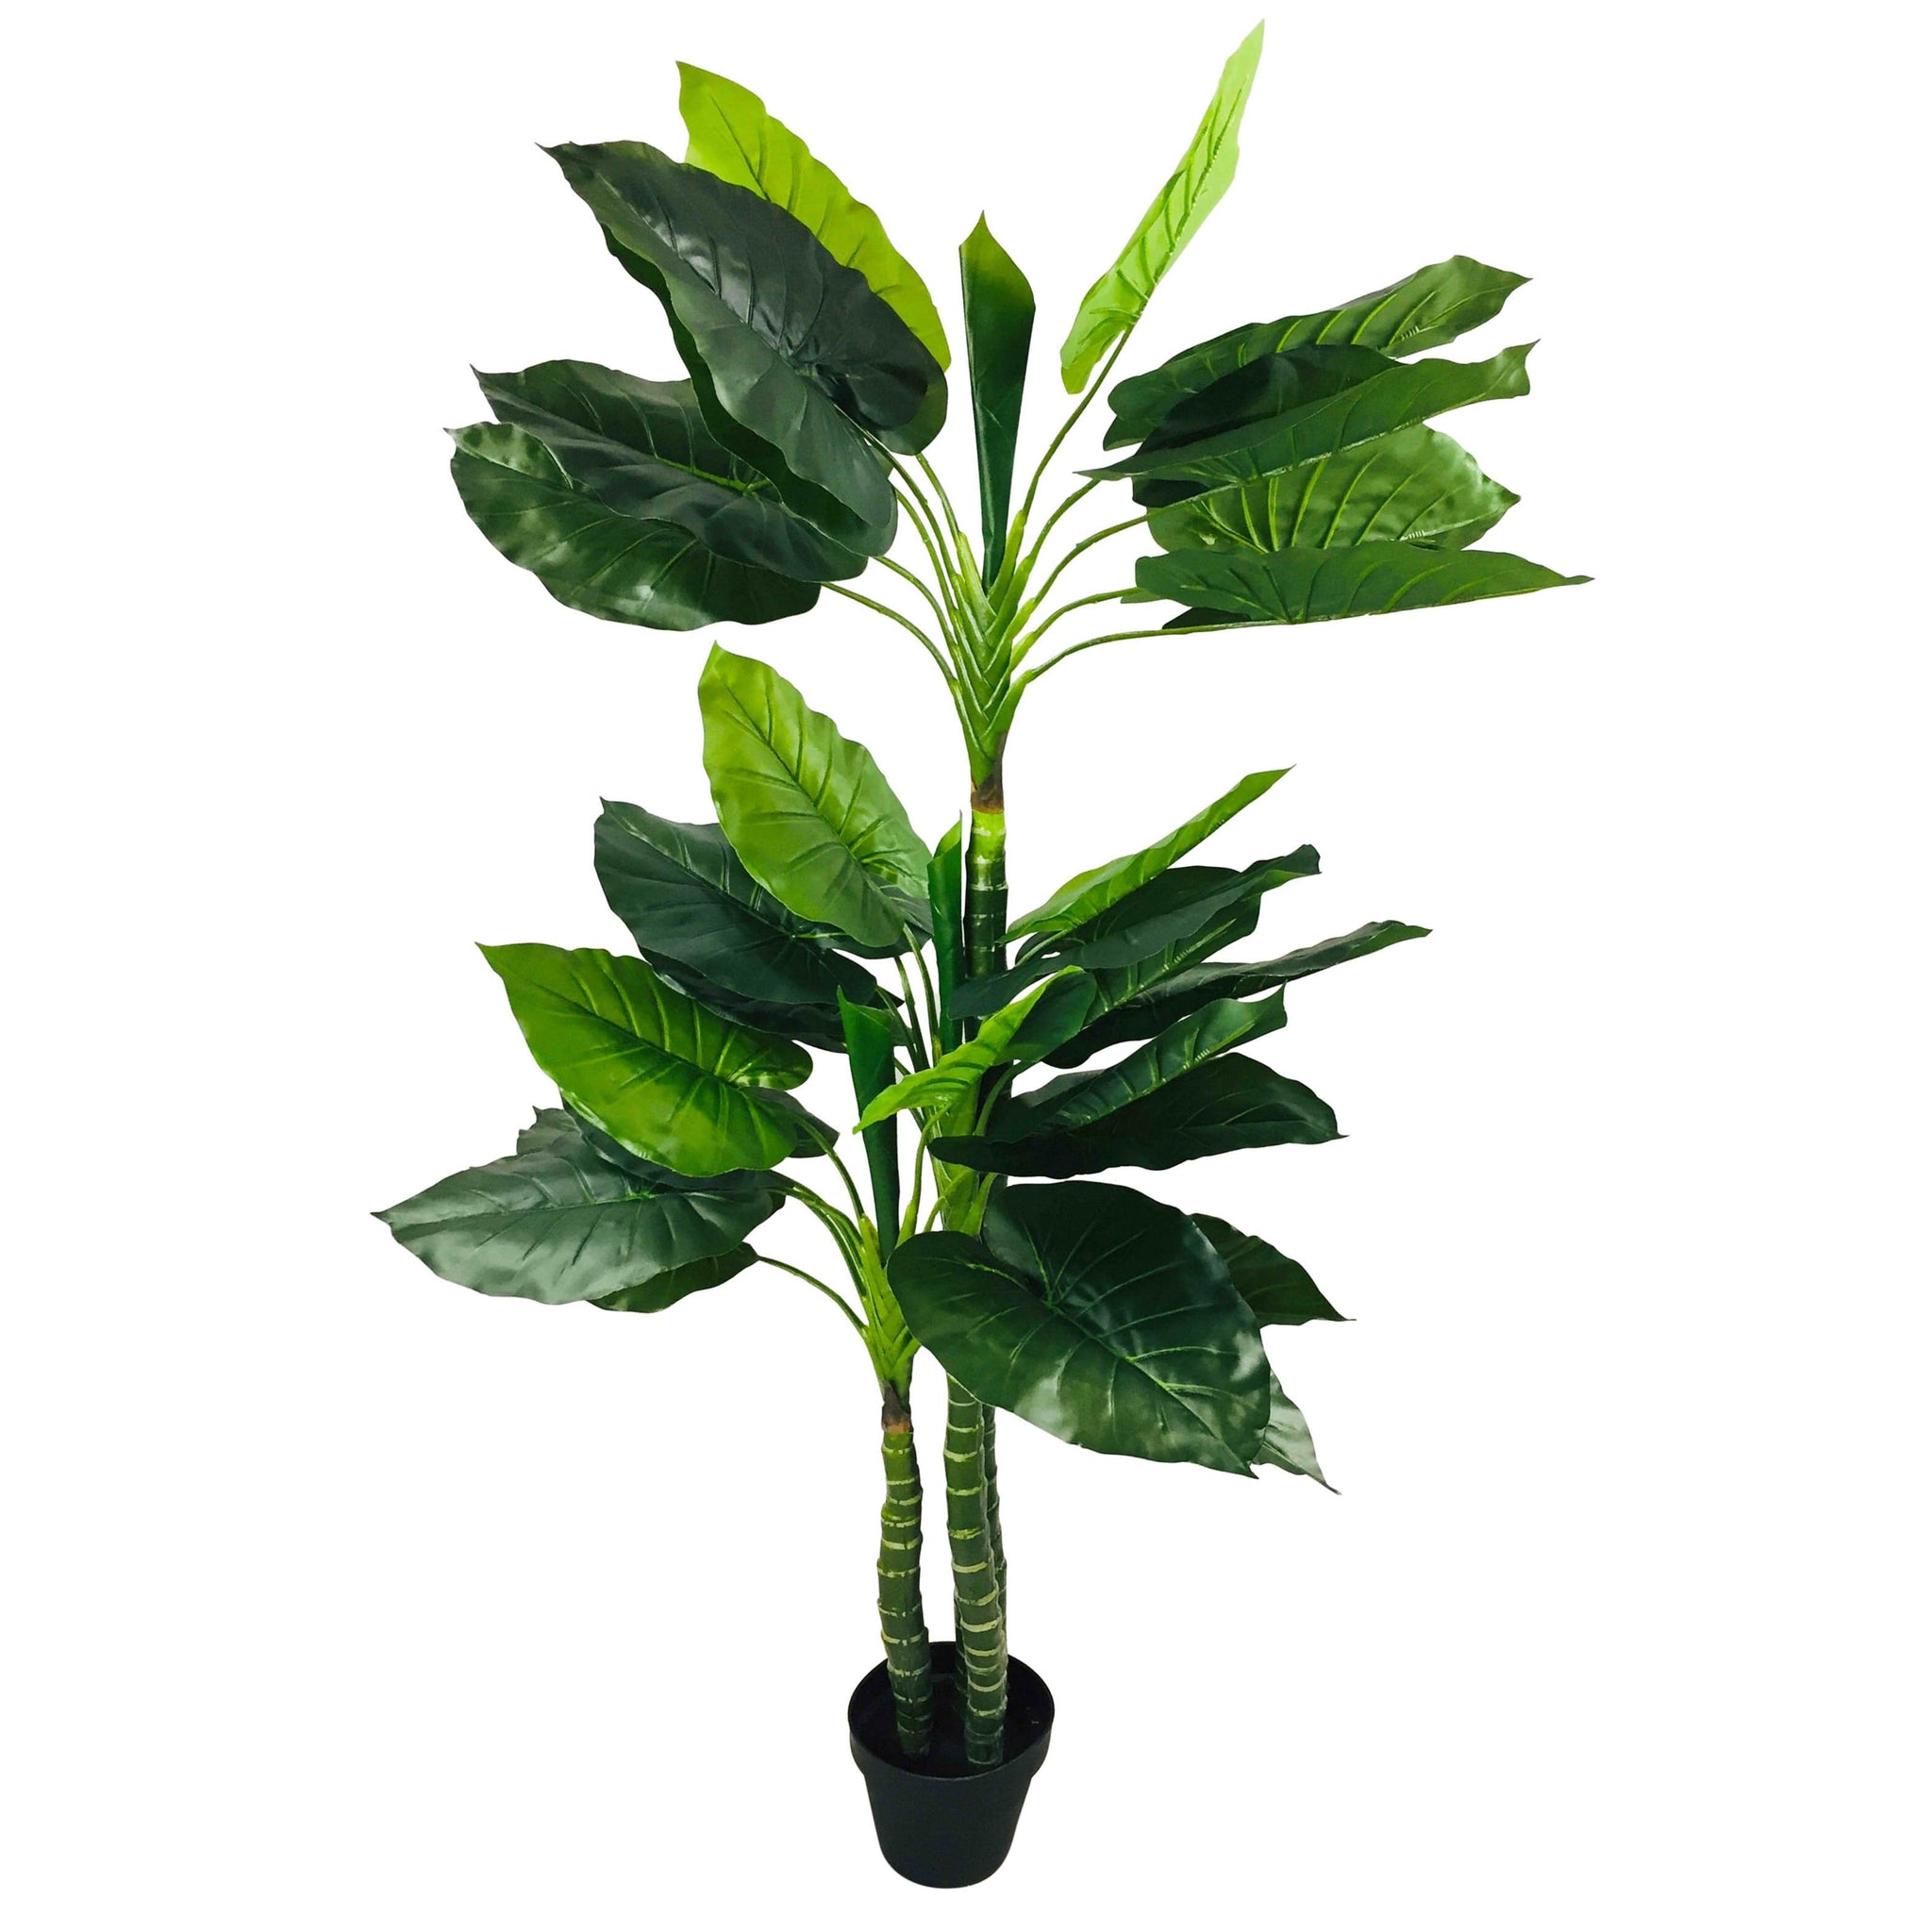 Artificial Taro Tree With 3 Trunks 150cm-Artificial Plant-The Modern Home Shop